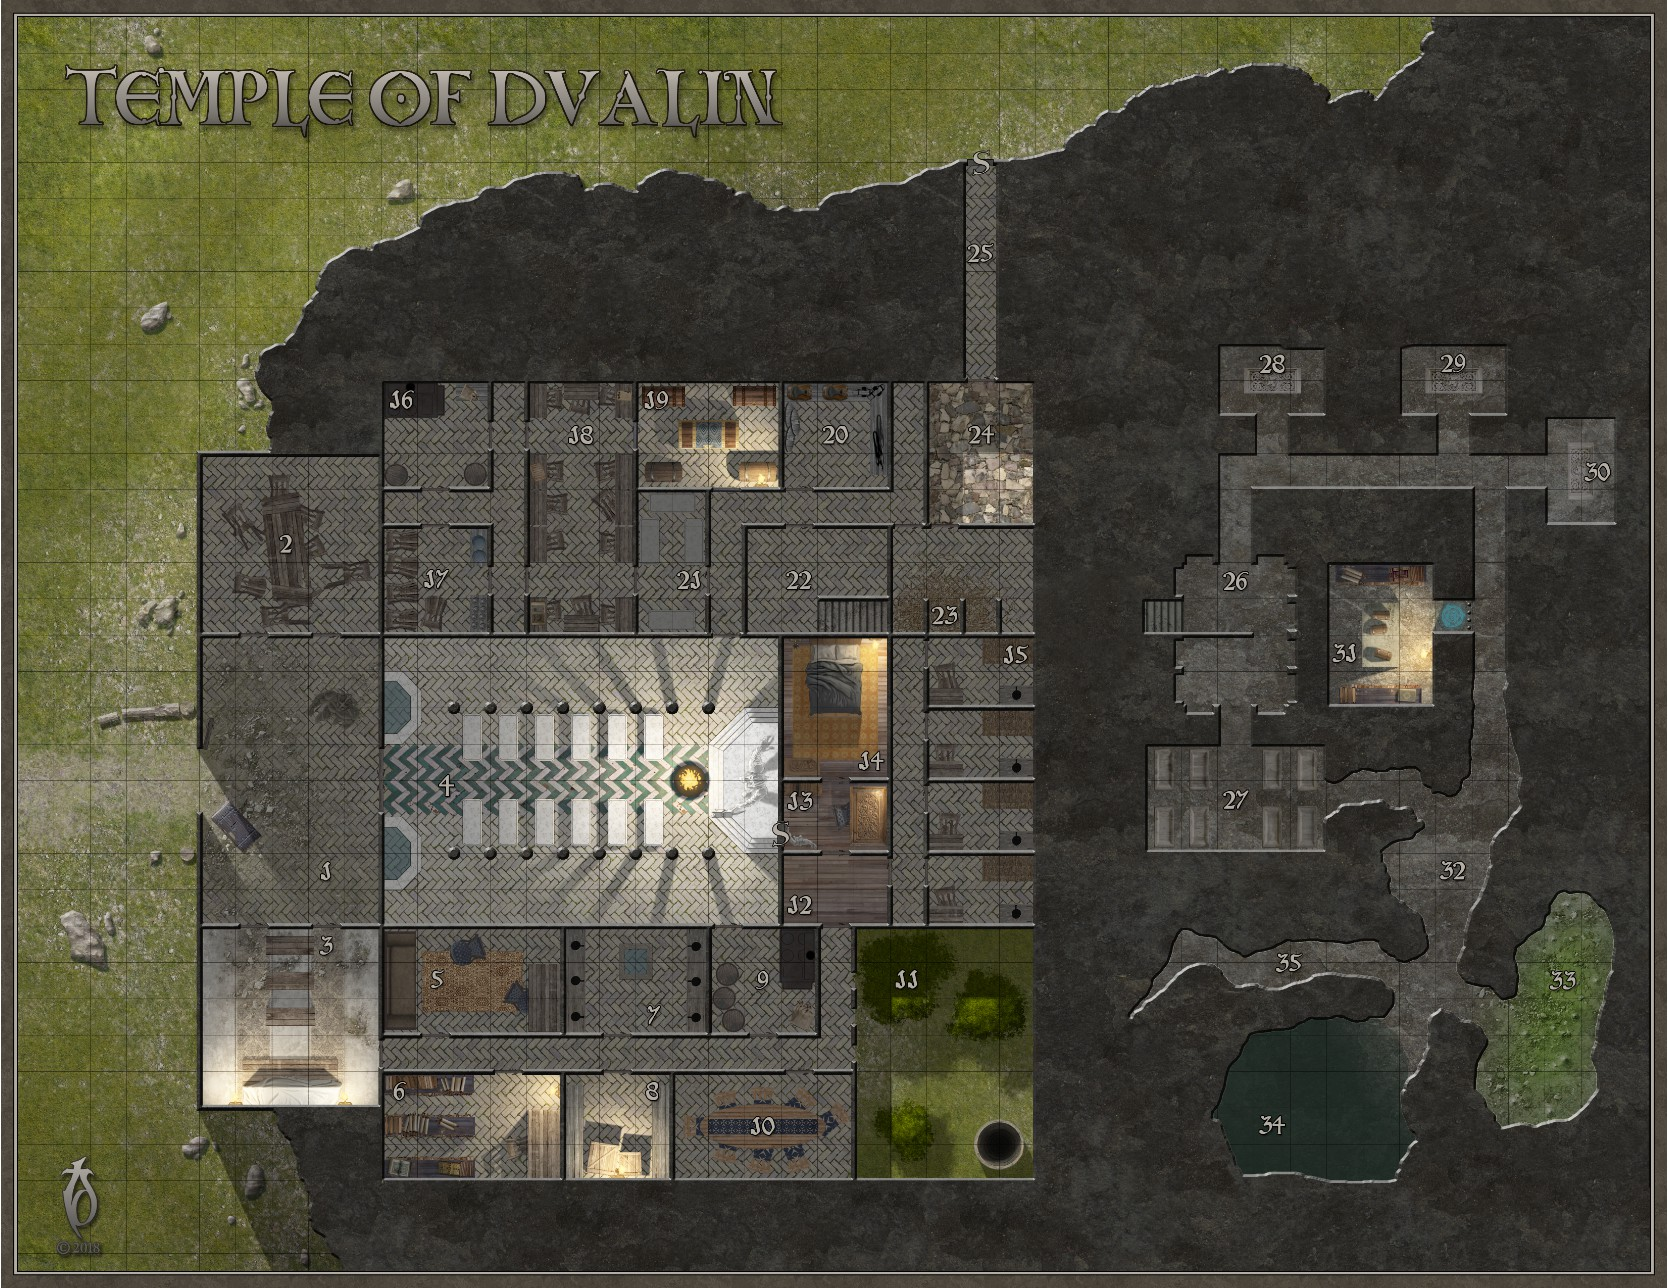 Temple of Dvalin